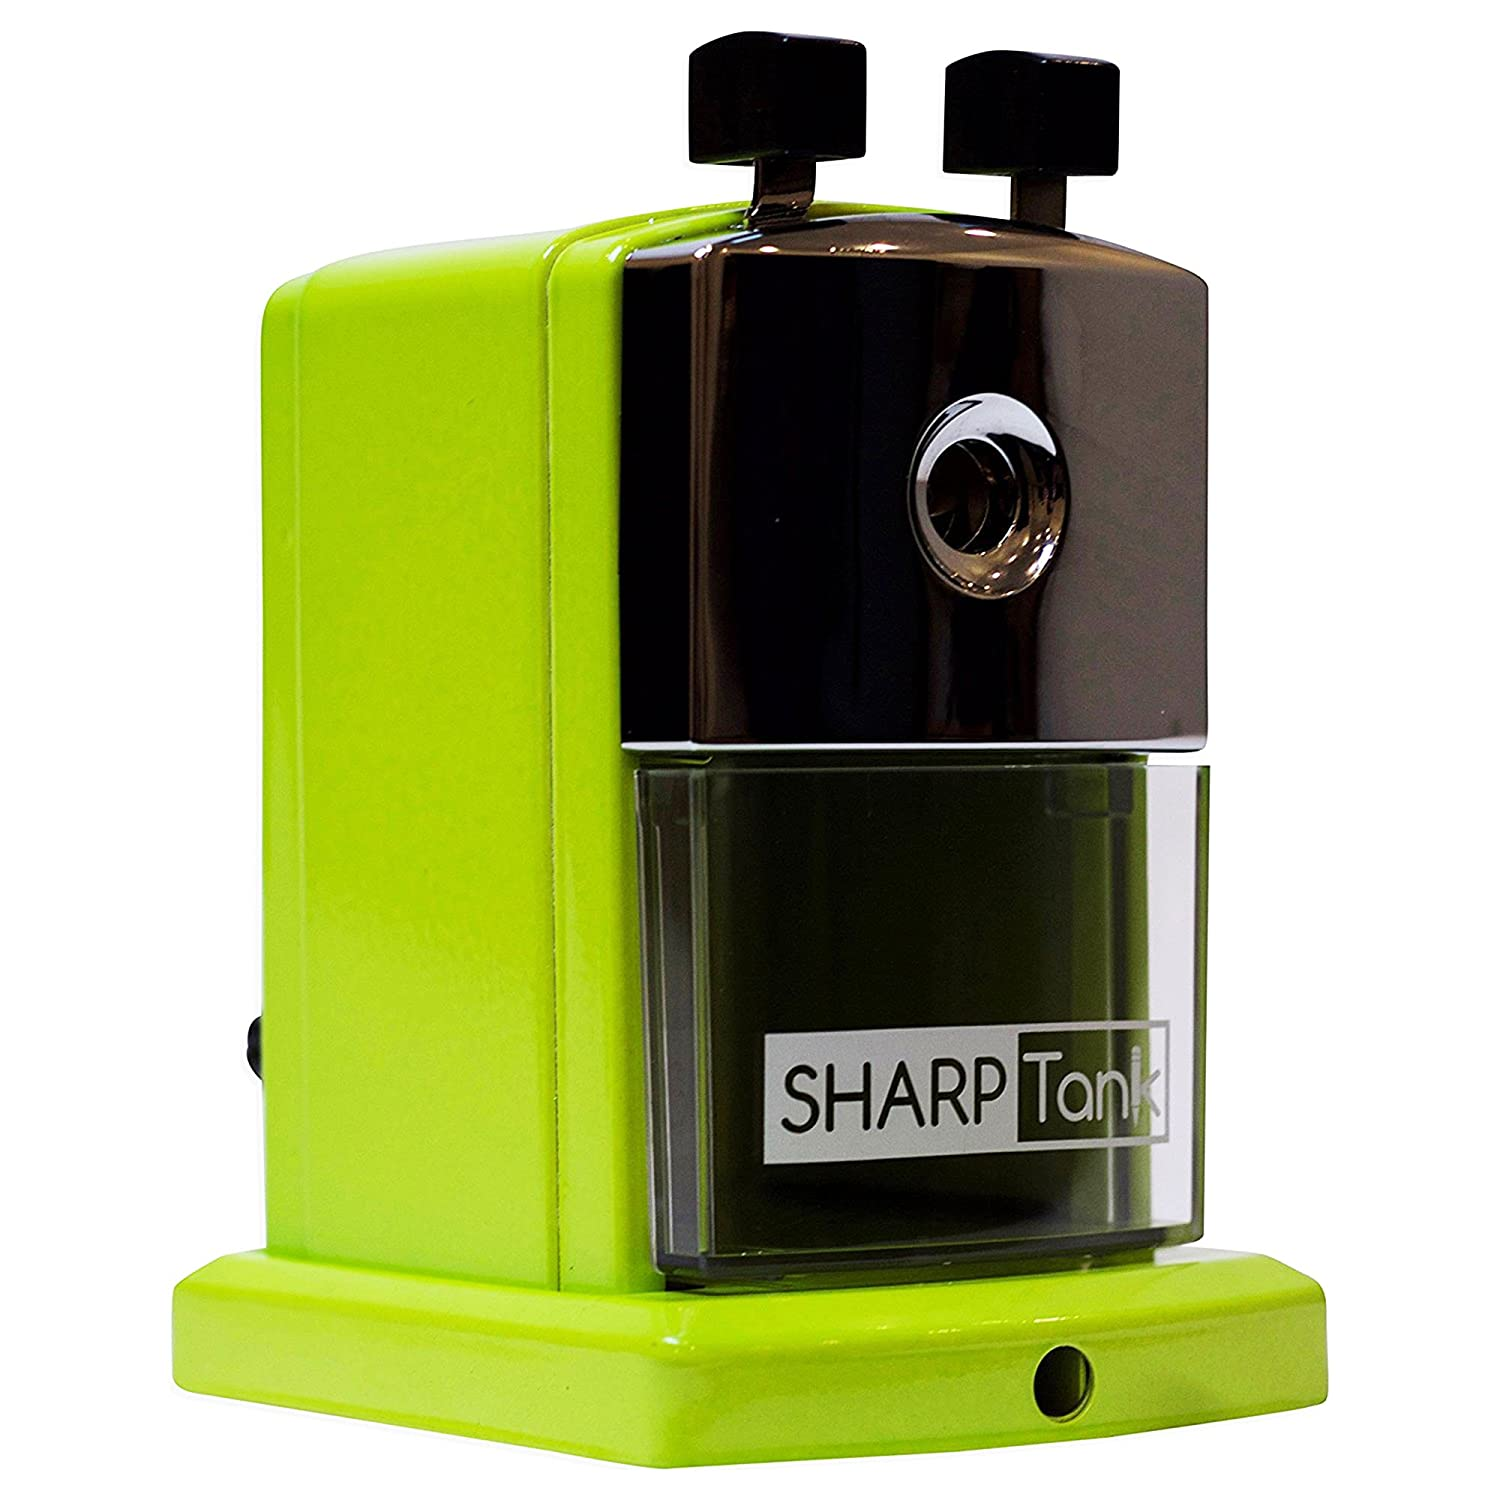 Metallic Silver Compact /& Quiet Classroom Sharpener That Gets Straight to the Point! SharpTank Portable Pencil Sharpener